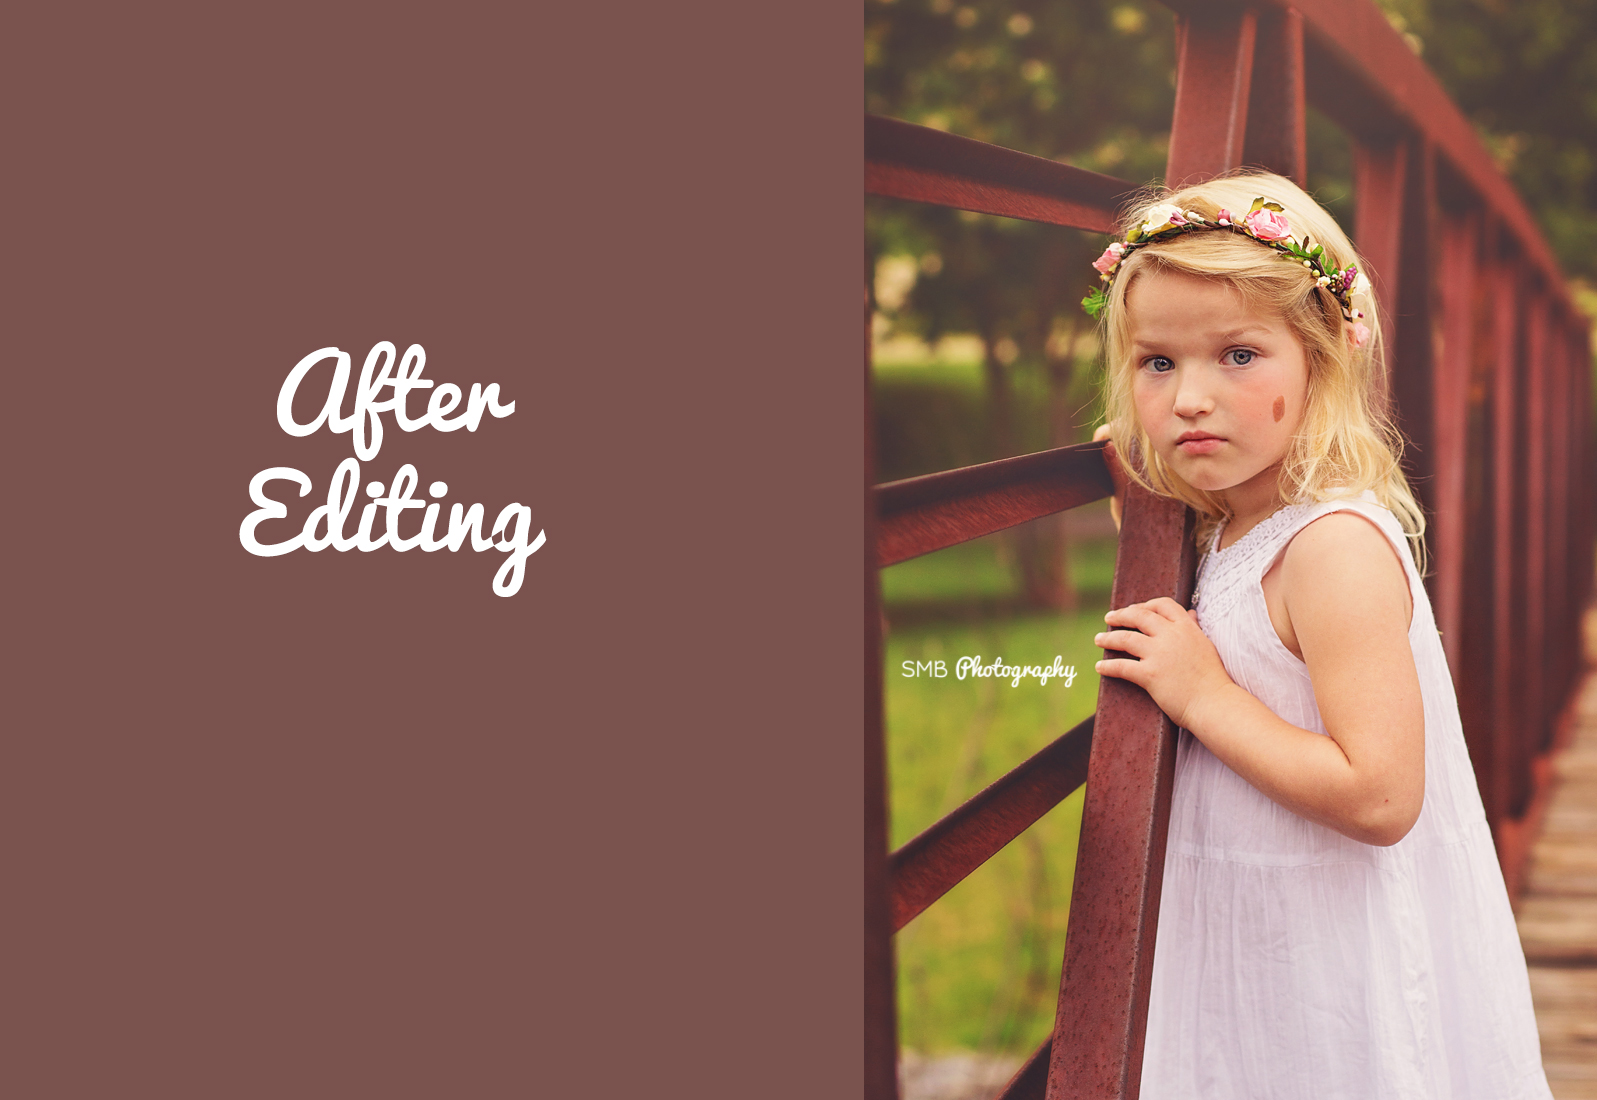 After editing | SMB Photography